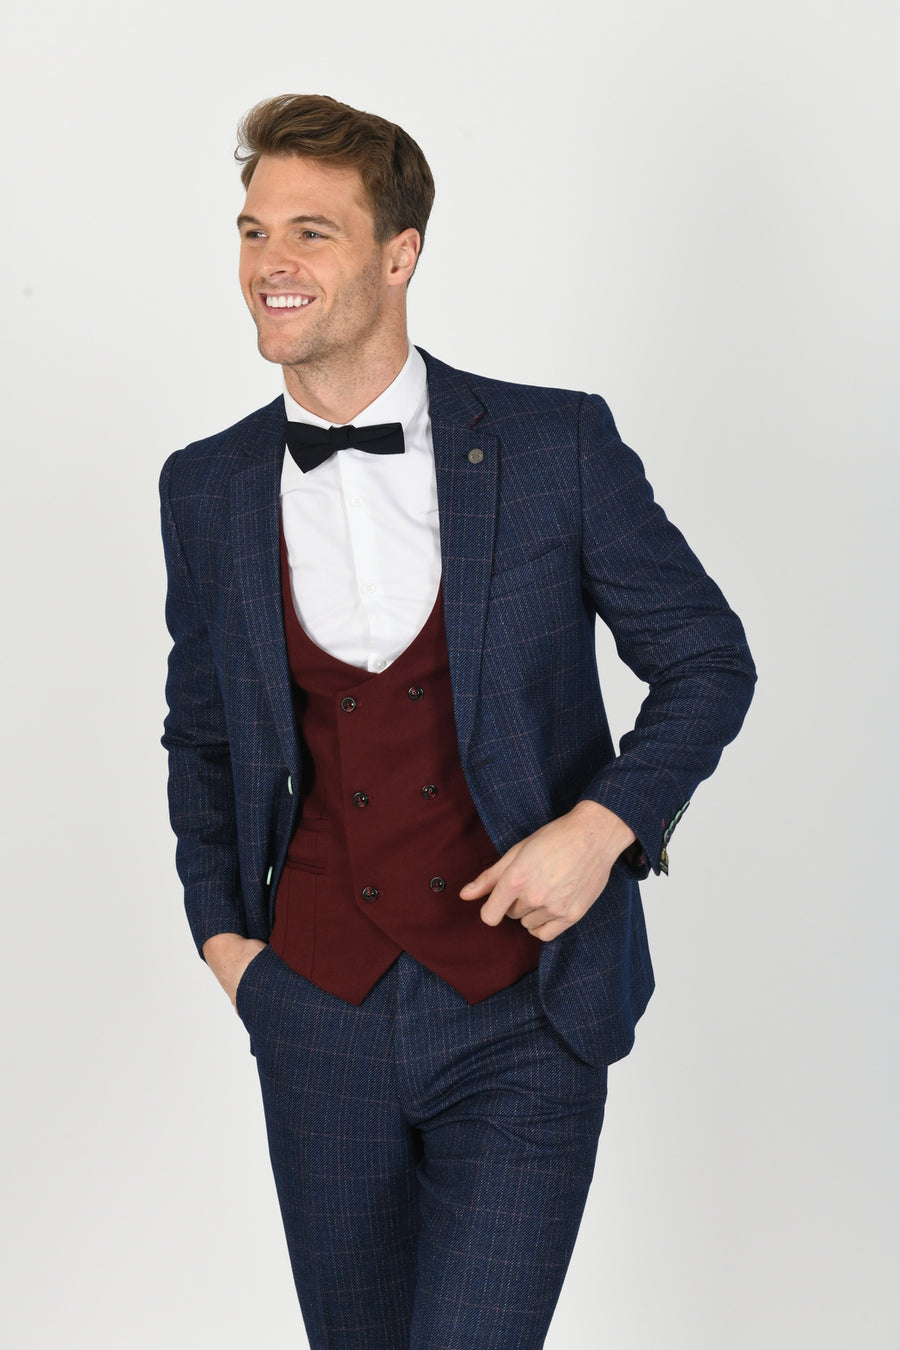 Harry Indigo Suit w/ Kelly Wine Double Breasted Waistcoat - Wedding Suit Direct